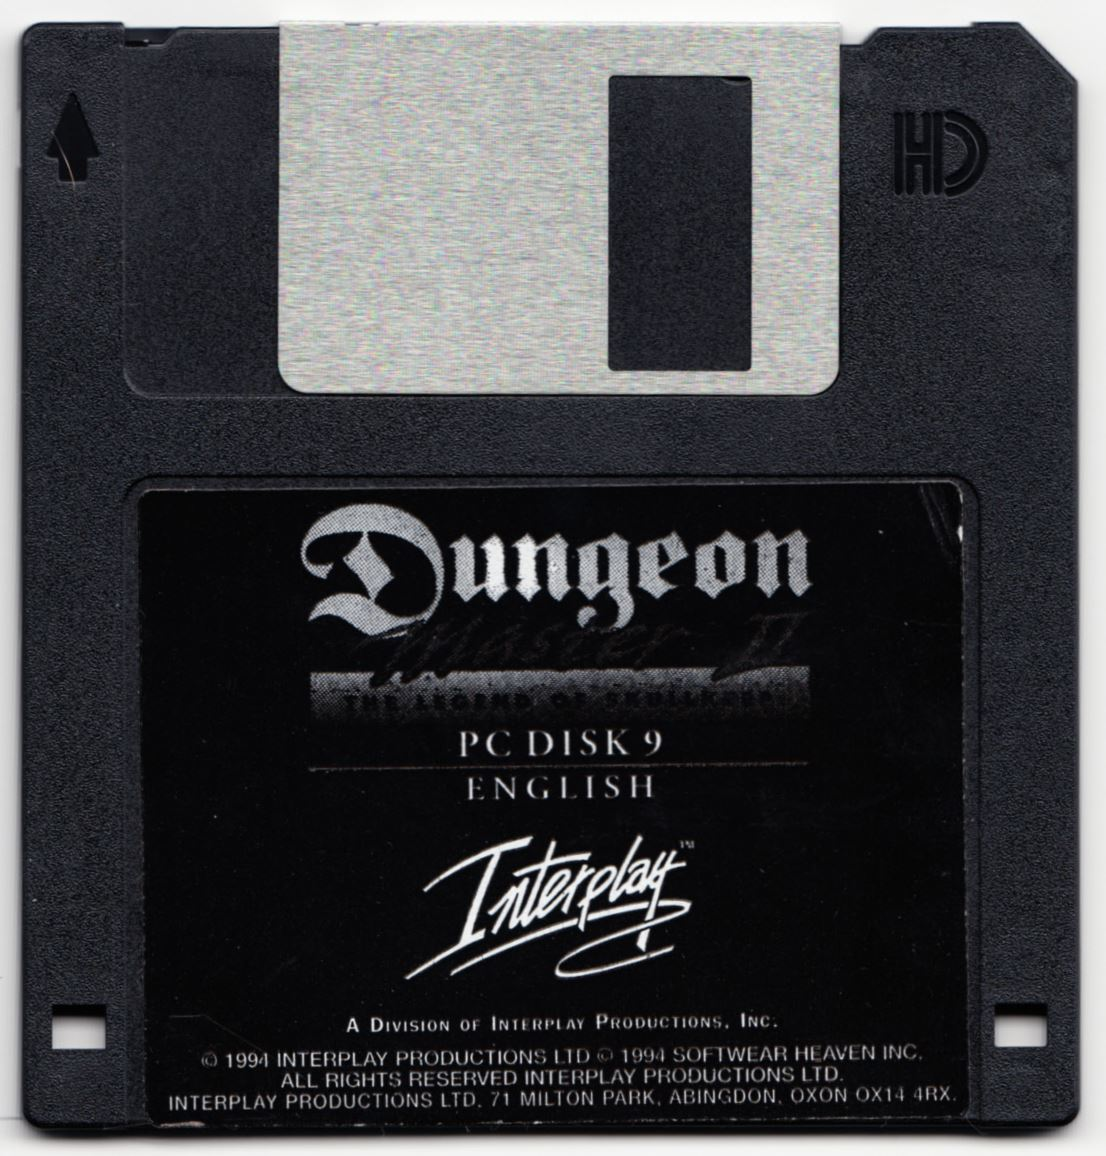 Game - Dungeon Master II - UK - PC - Floppy Version - Disk 9 - Front - Scan